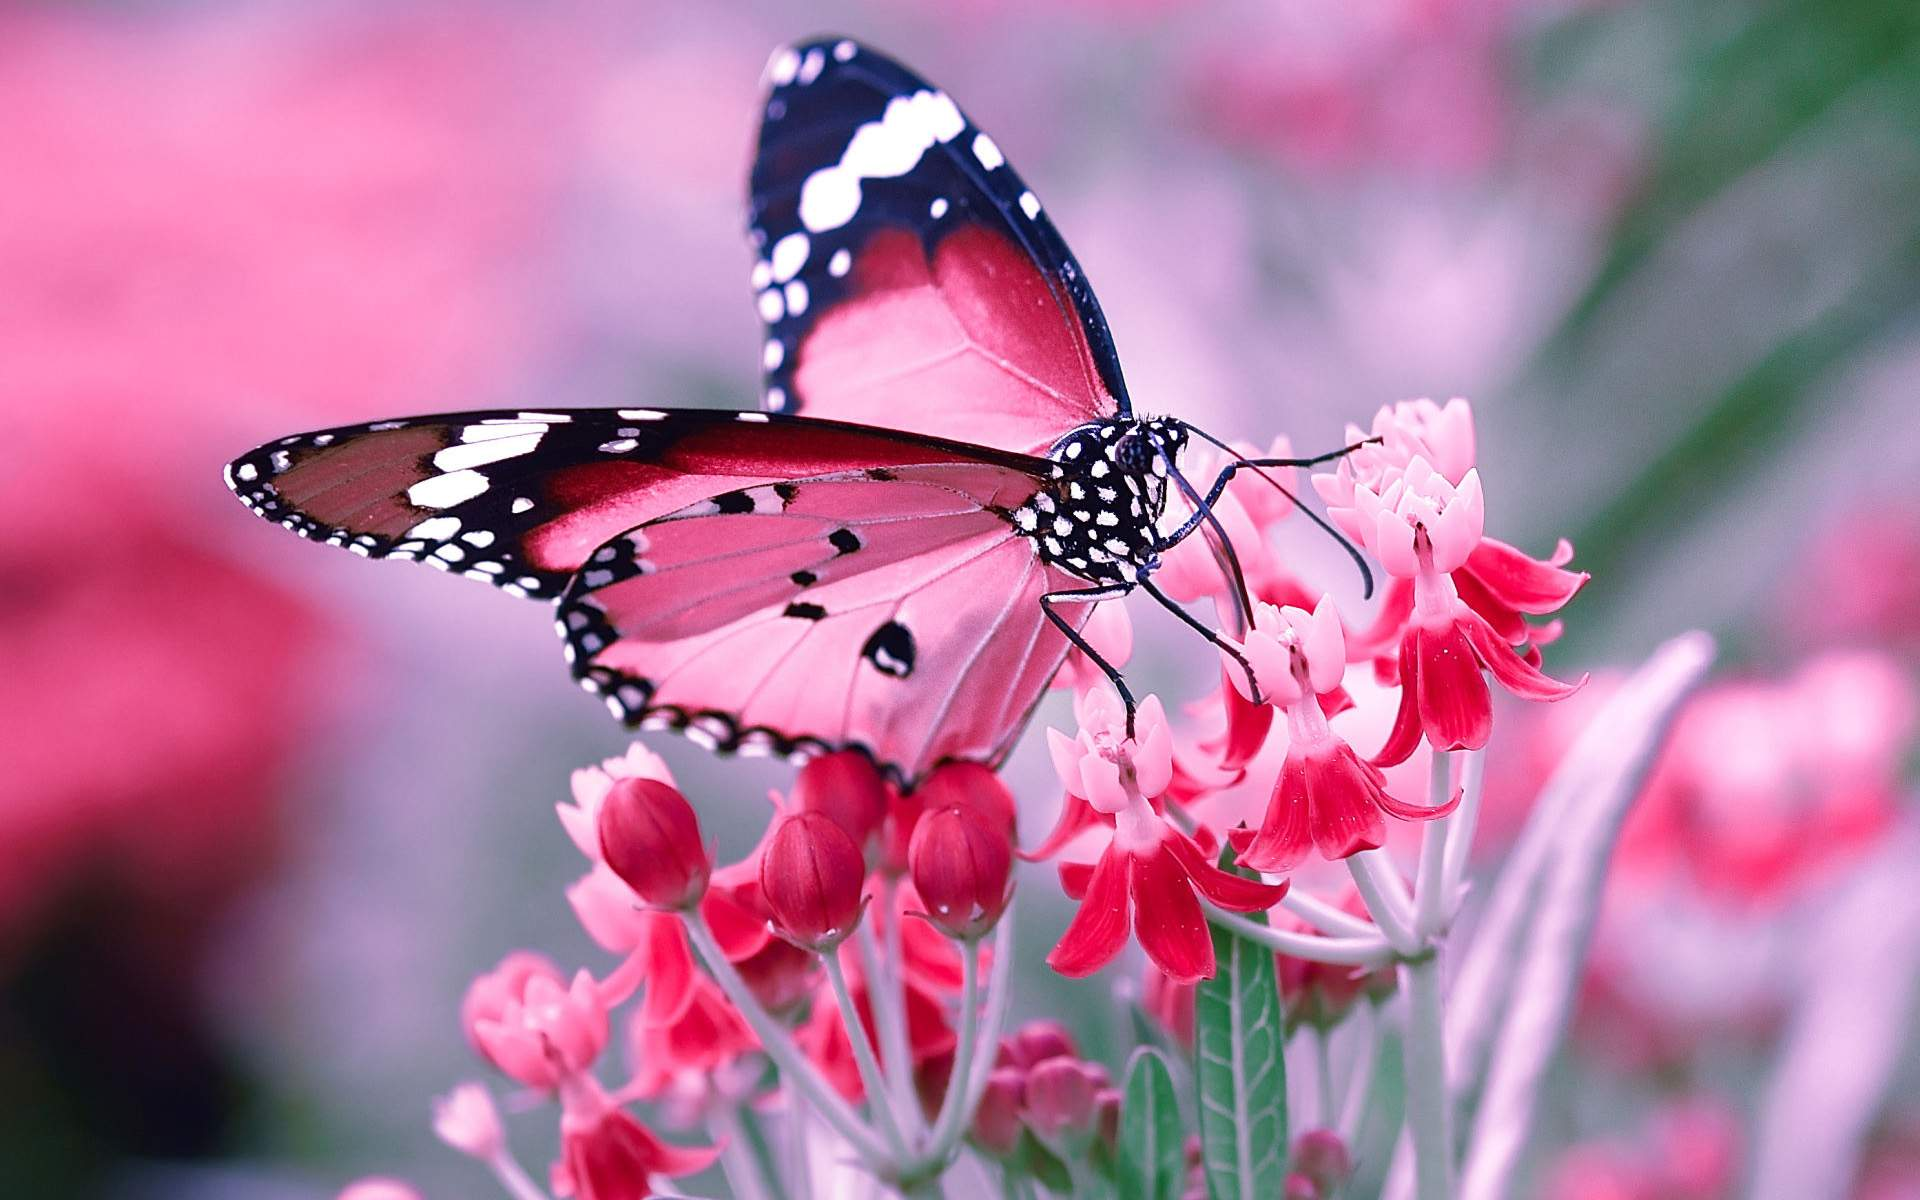 55 Colorful ButterflyHD Images Wallpapers Download 1920x1200